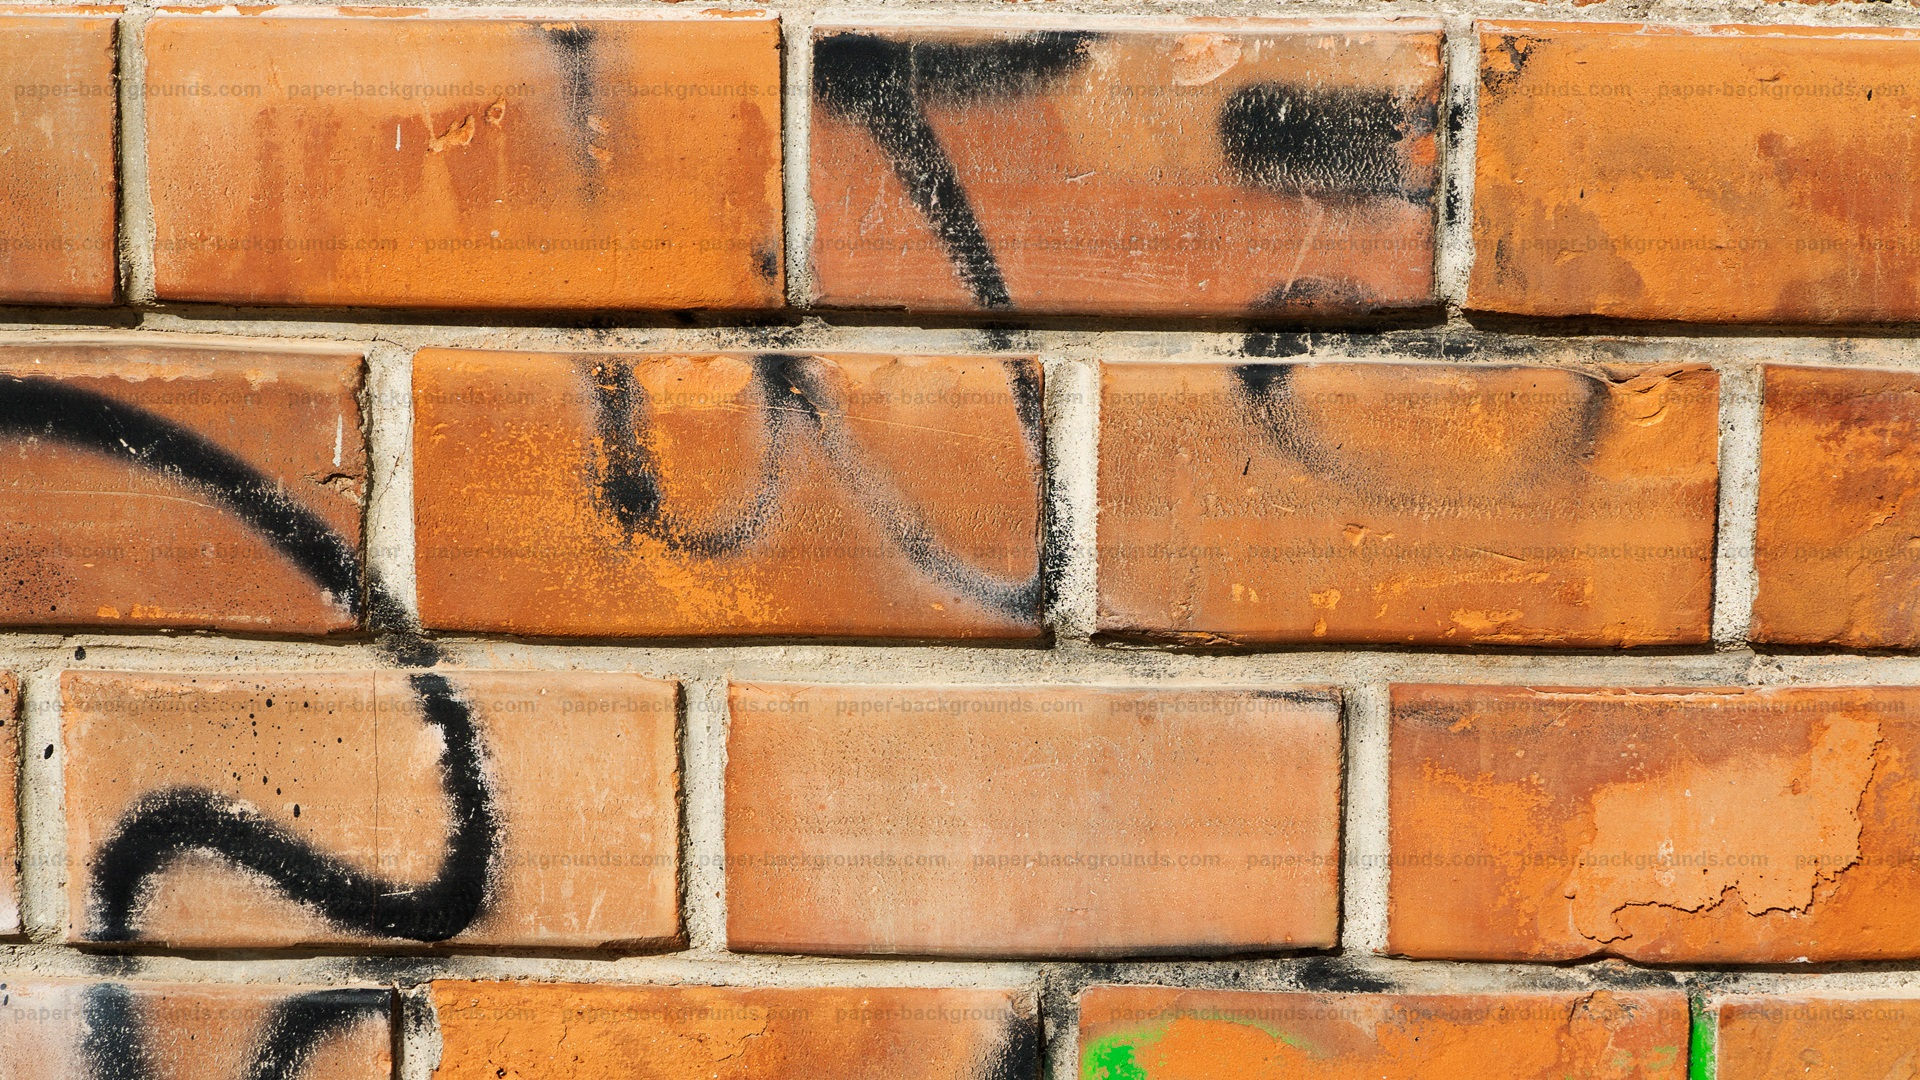 Graffiti Bricks Texture HD